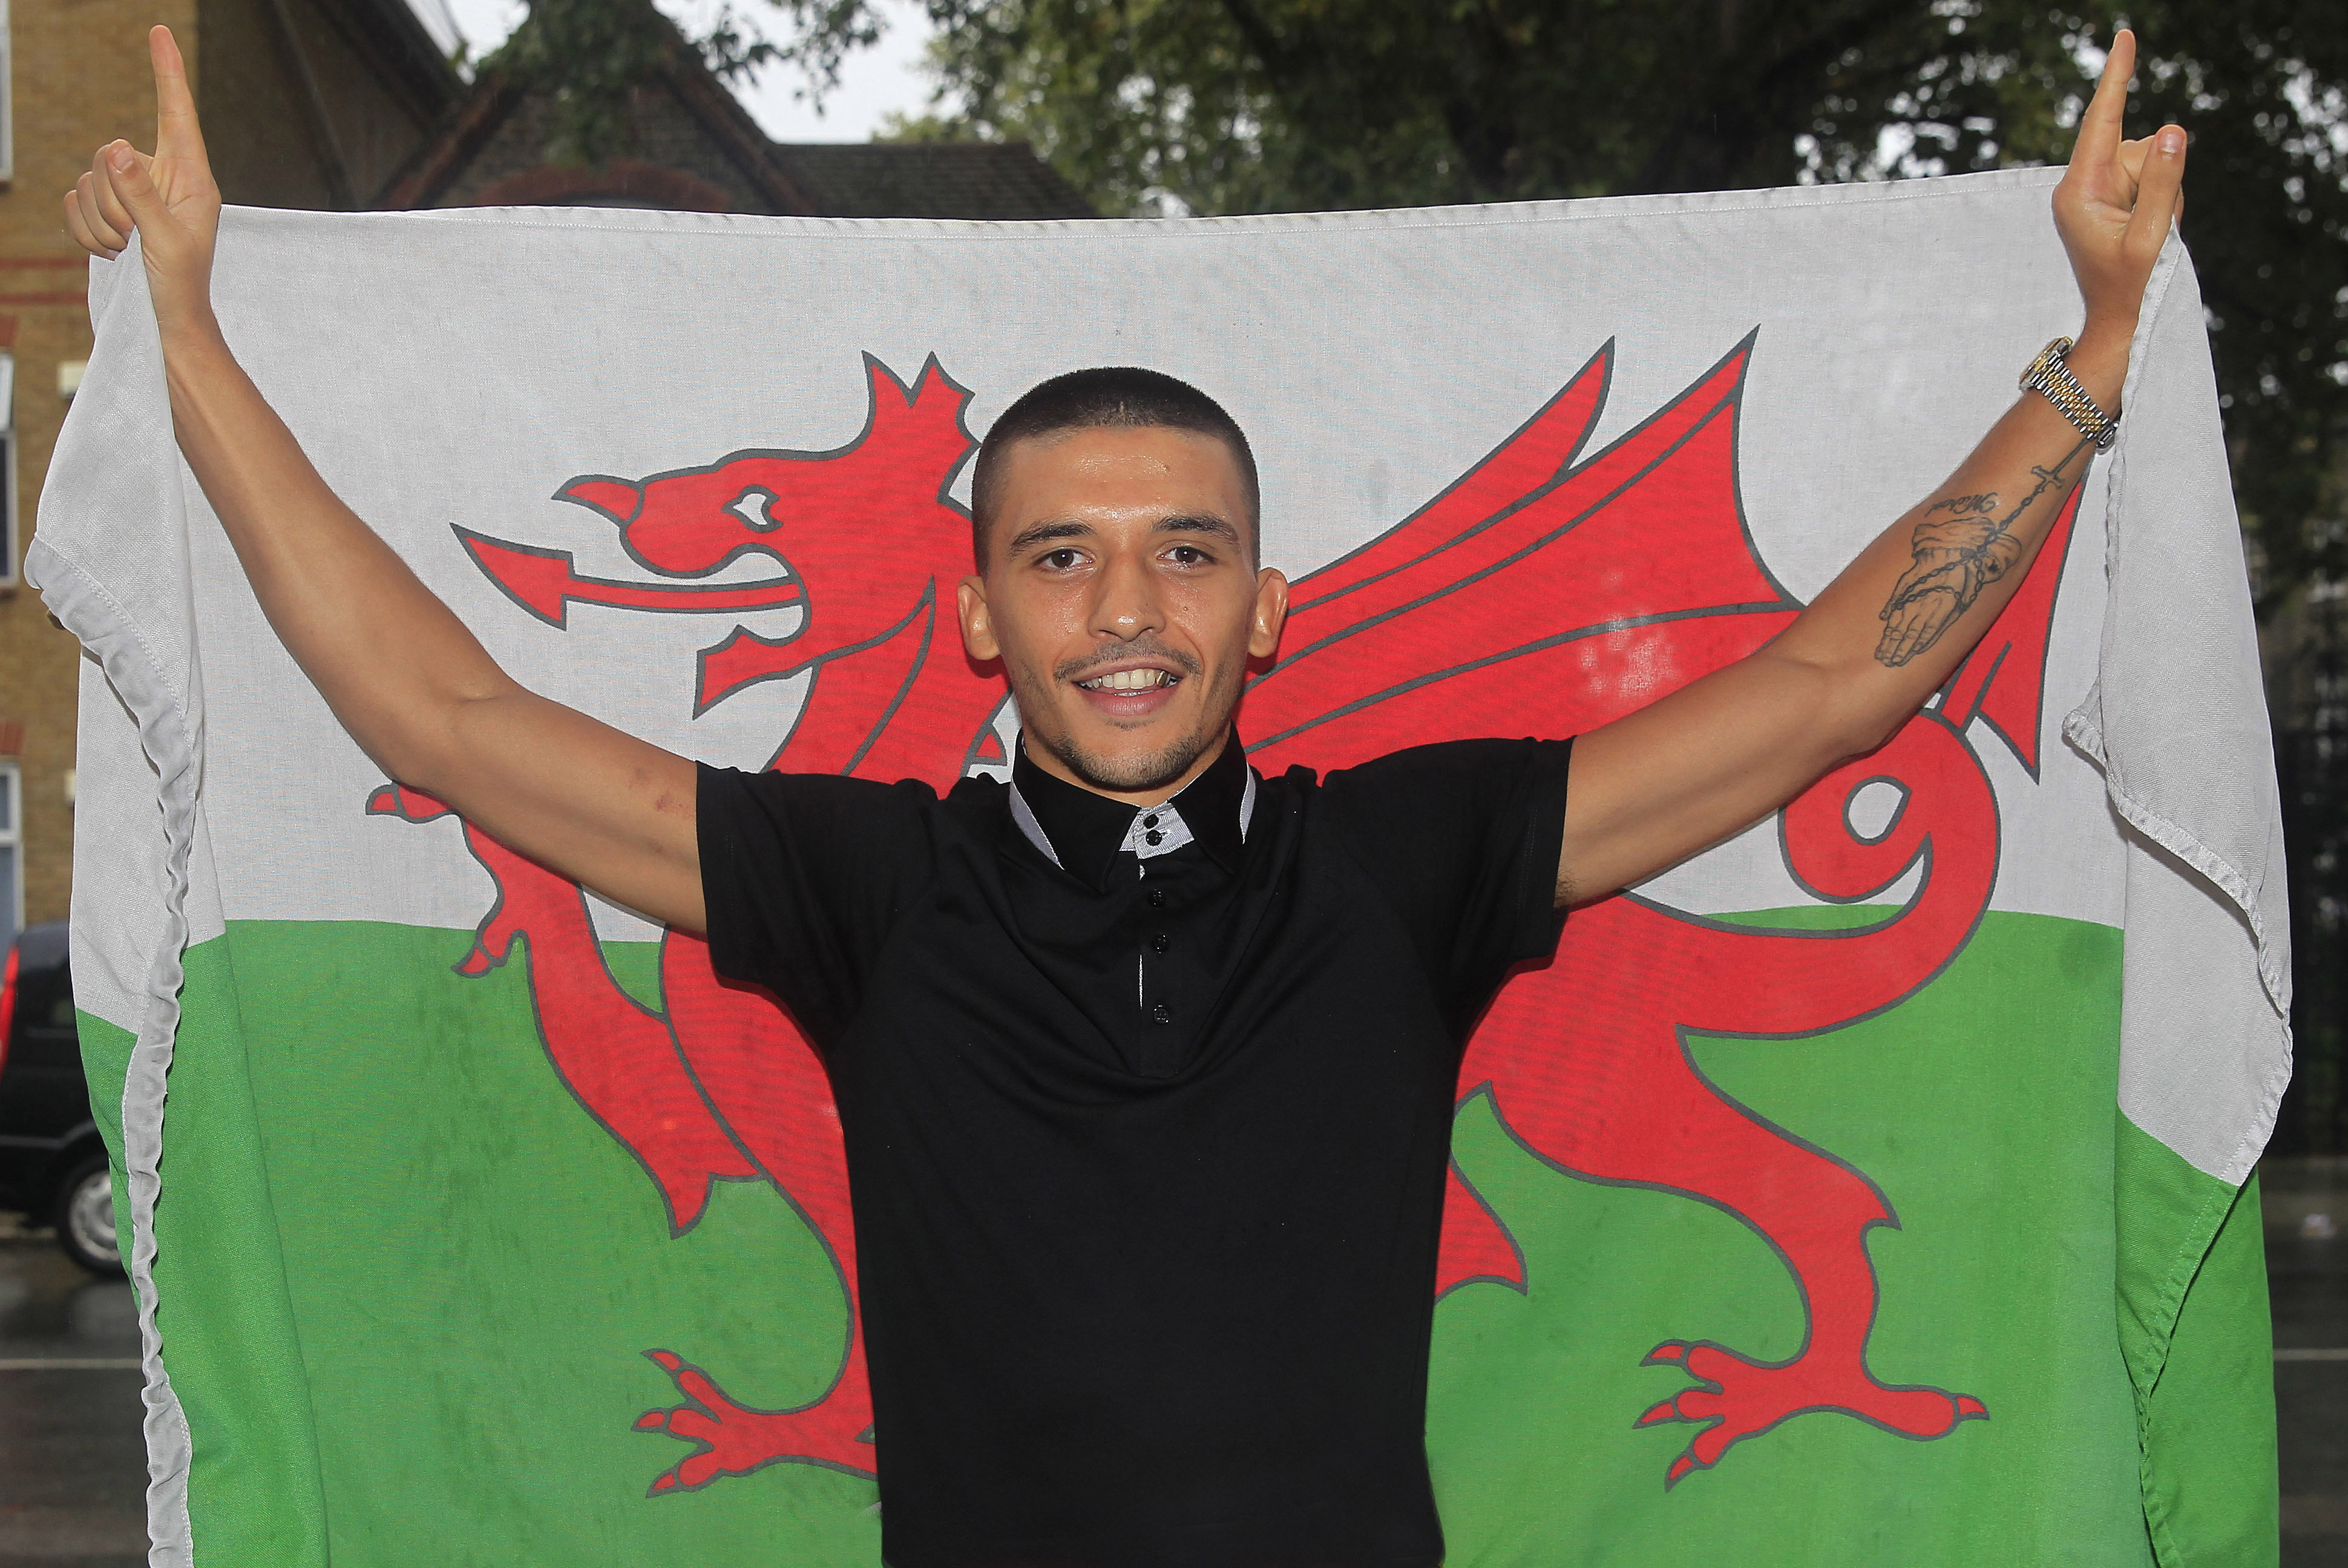 Shiv Naresh Teens Boxing Gloves 12oz: 'LIGHTNING' LEE SELBY RETURNS TO ACTION AT THE O2